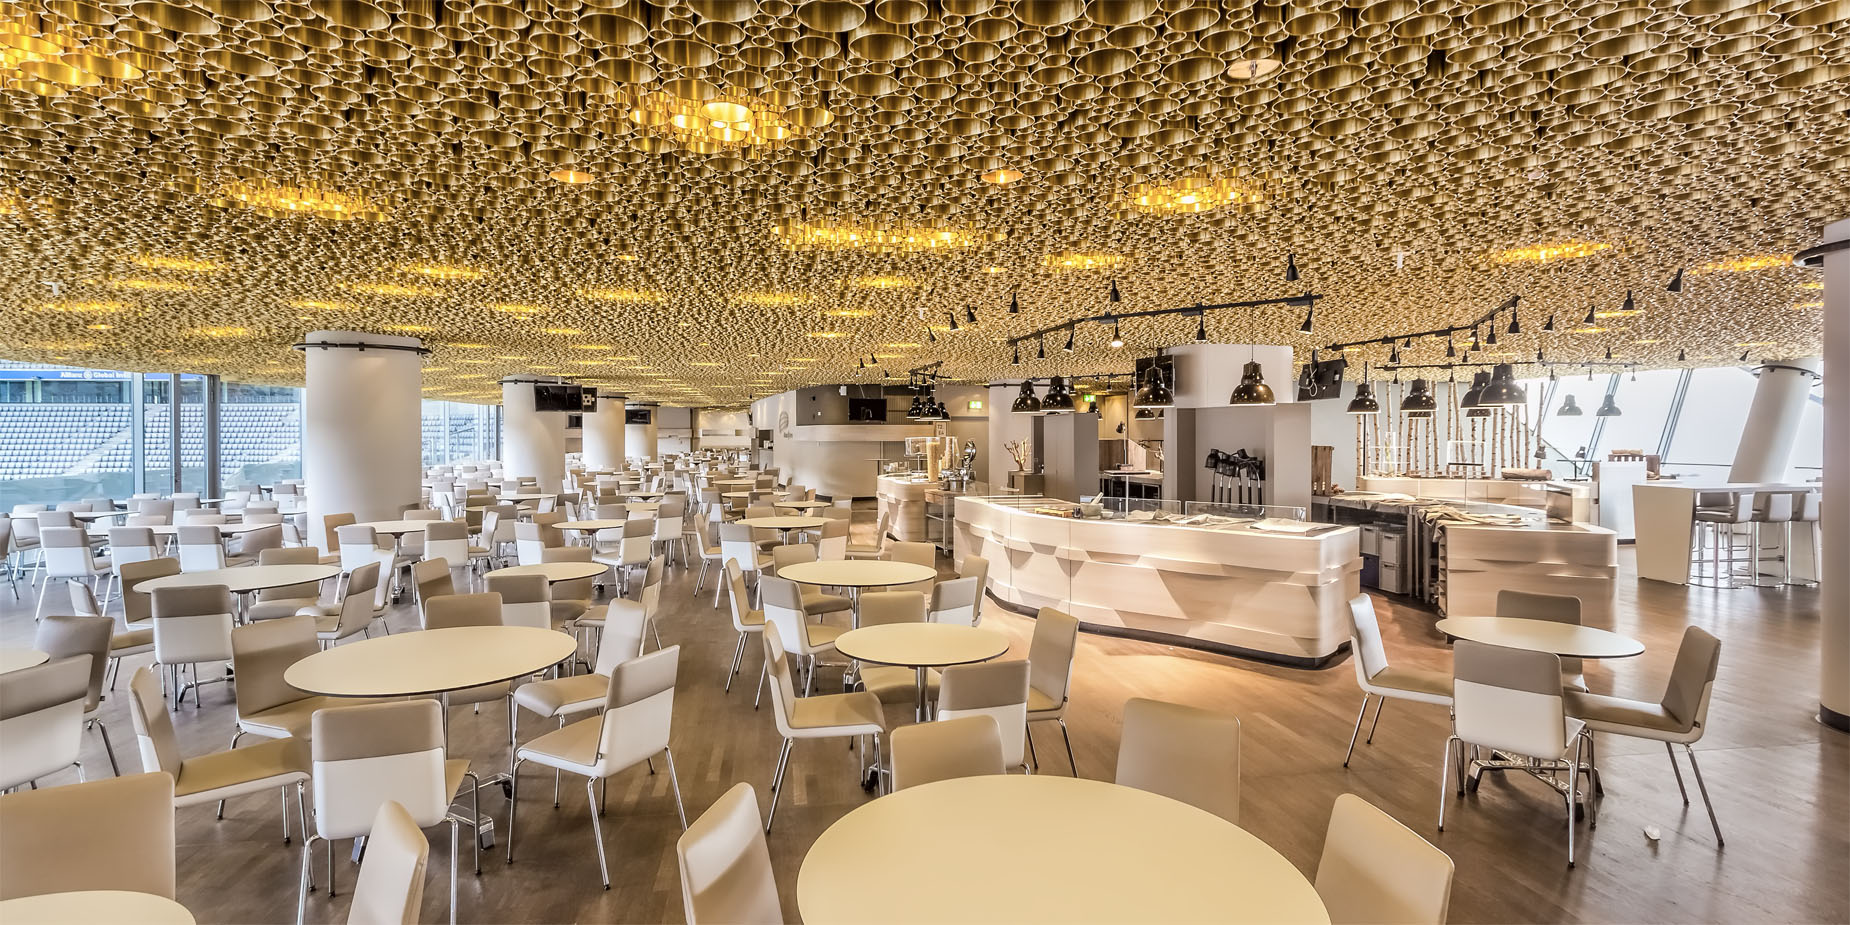 Architekturfotografie München | Allianz Arena, Business Club